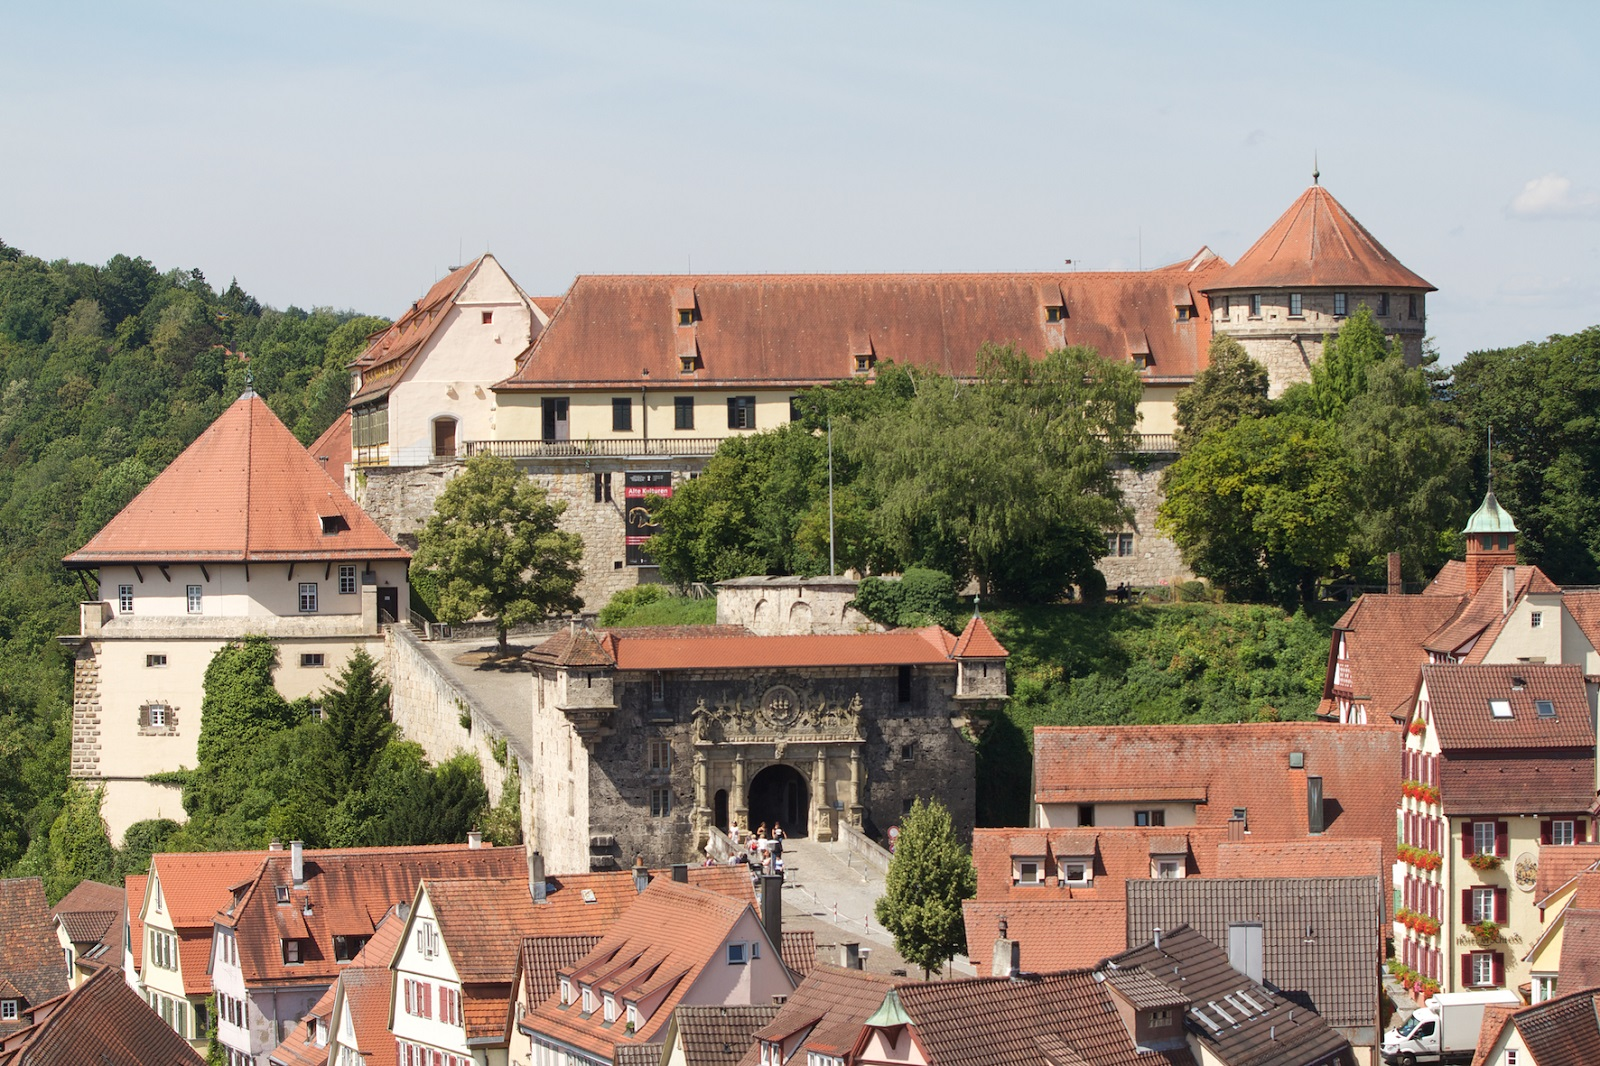 Hohentübingen Castle, the roofs of the old town in the foreground